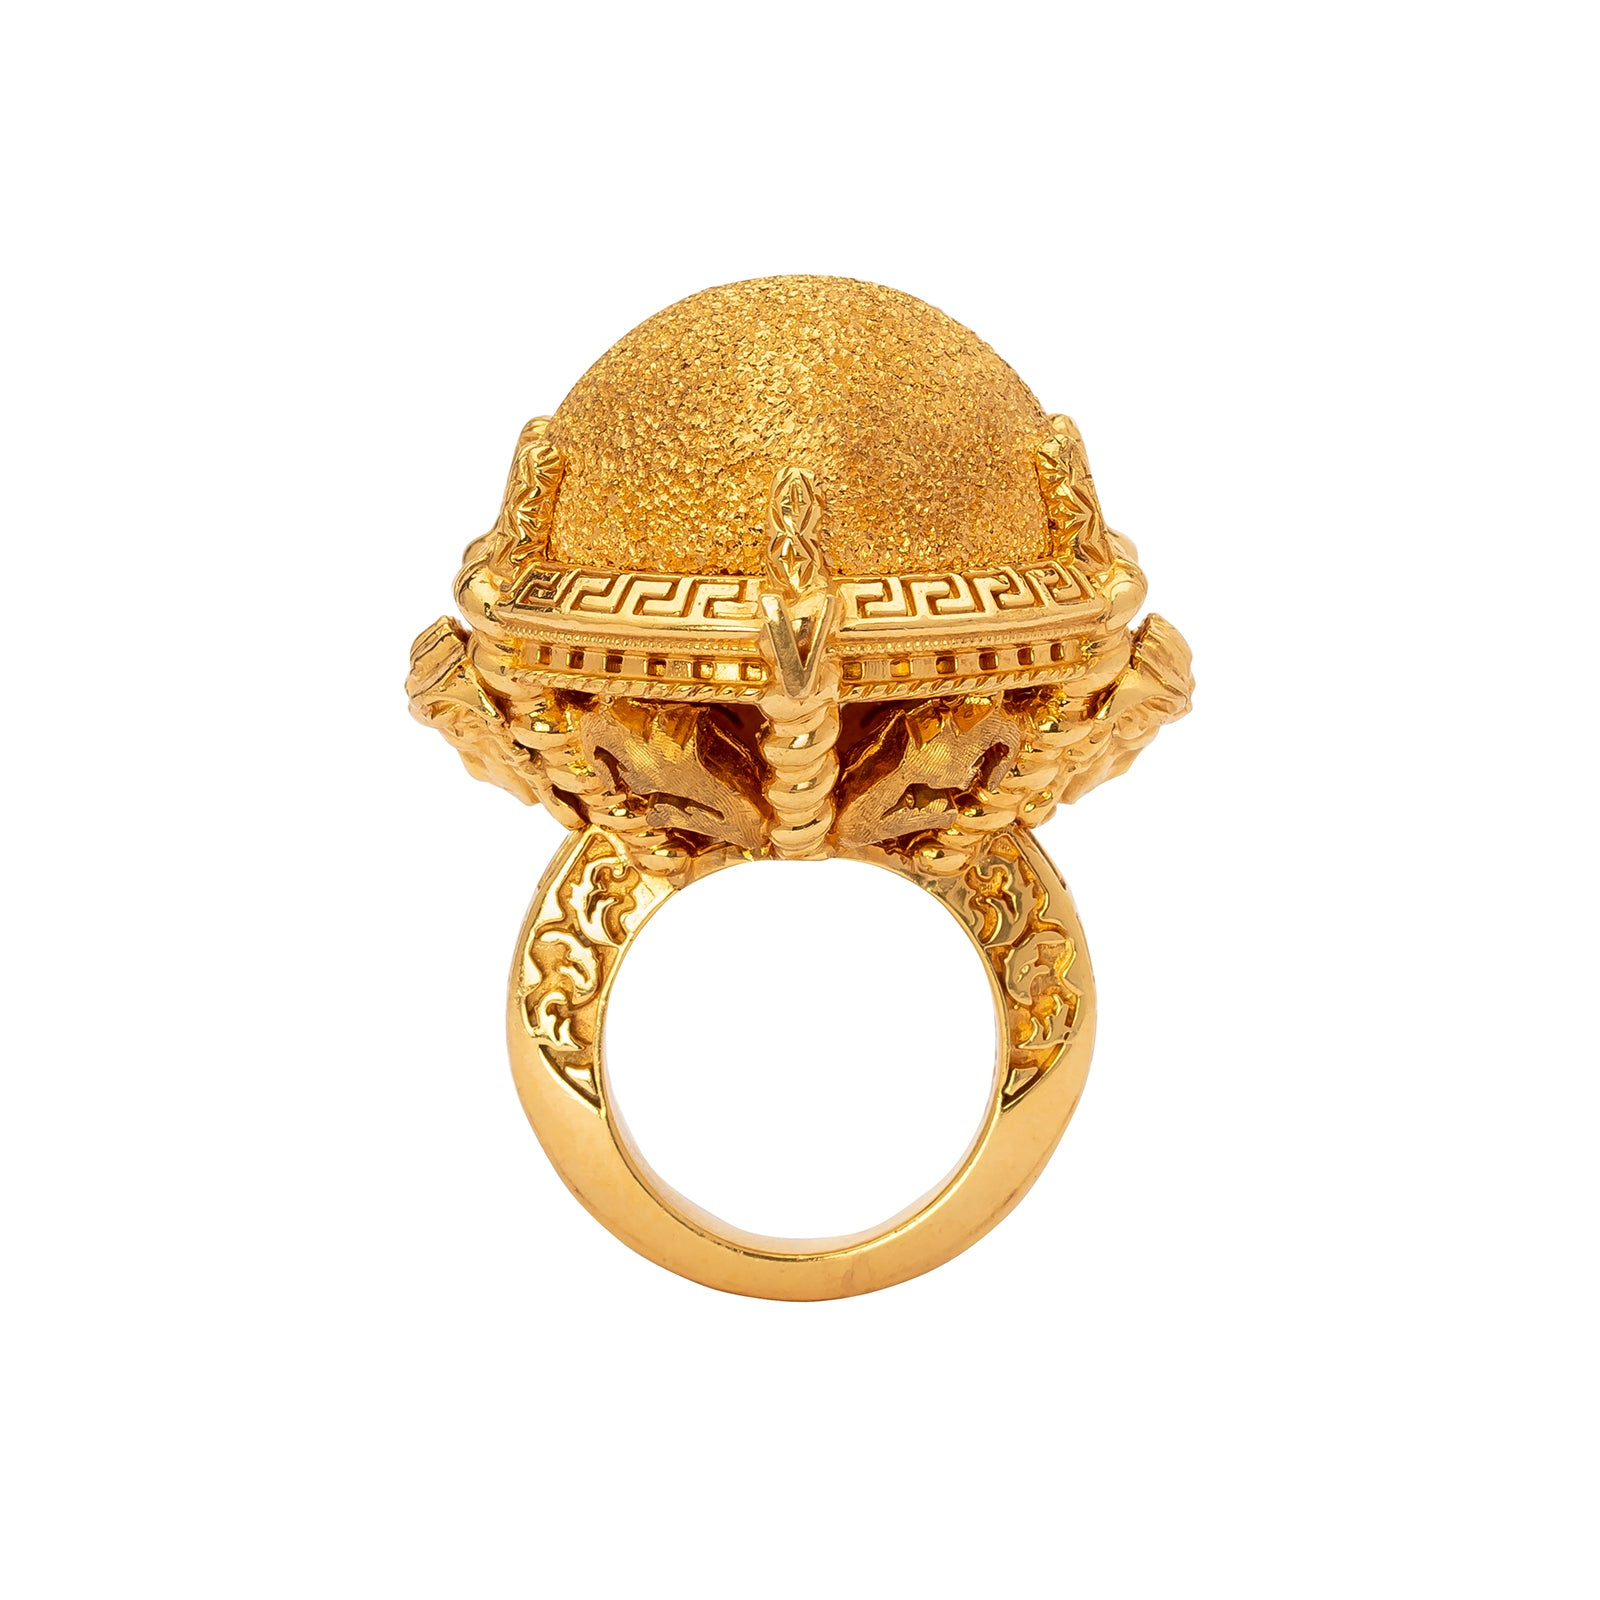 Antique & Vintage Jewelry Versace Medusa Globe Ring - Rings - Broken English Jewelry